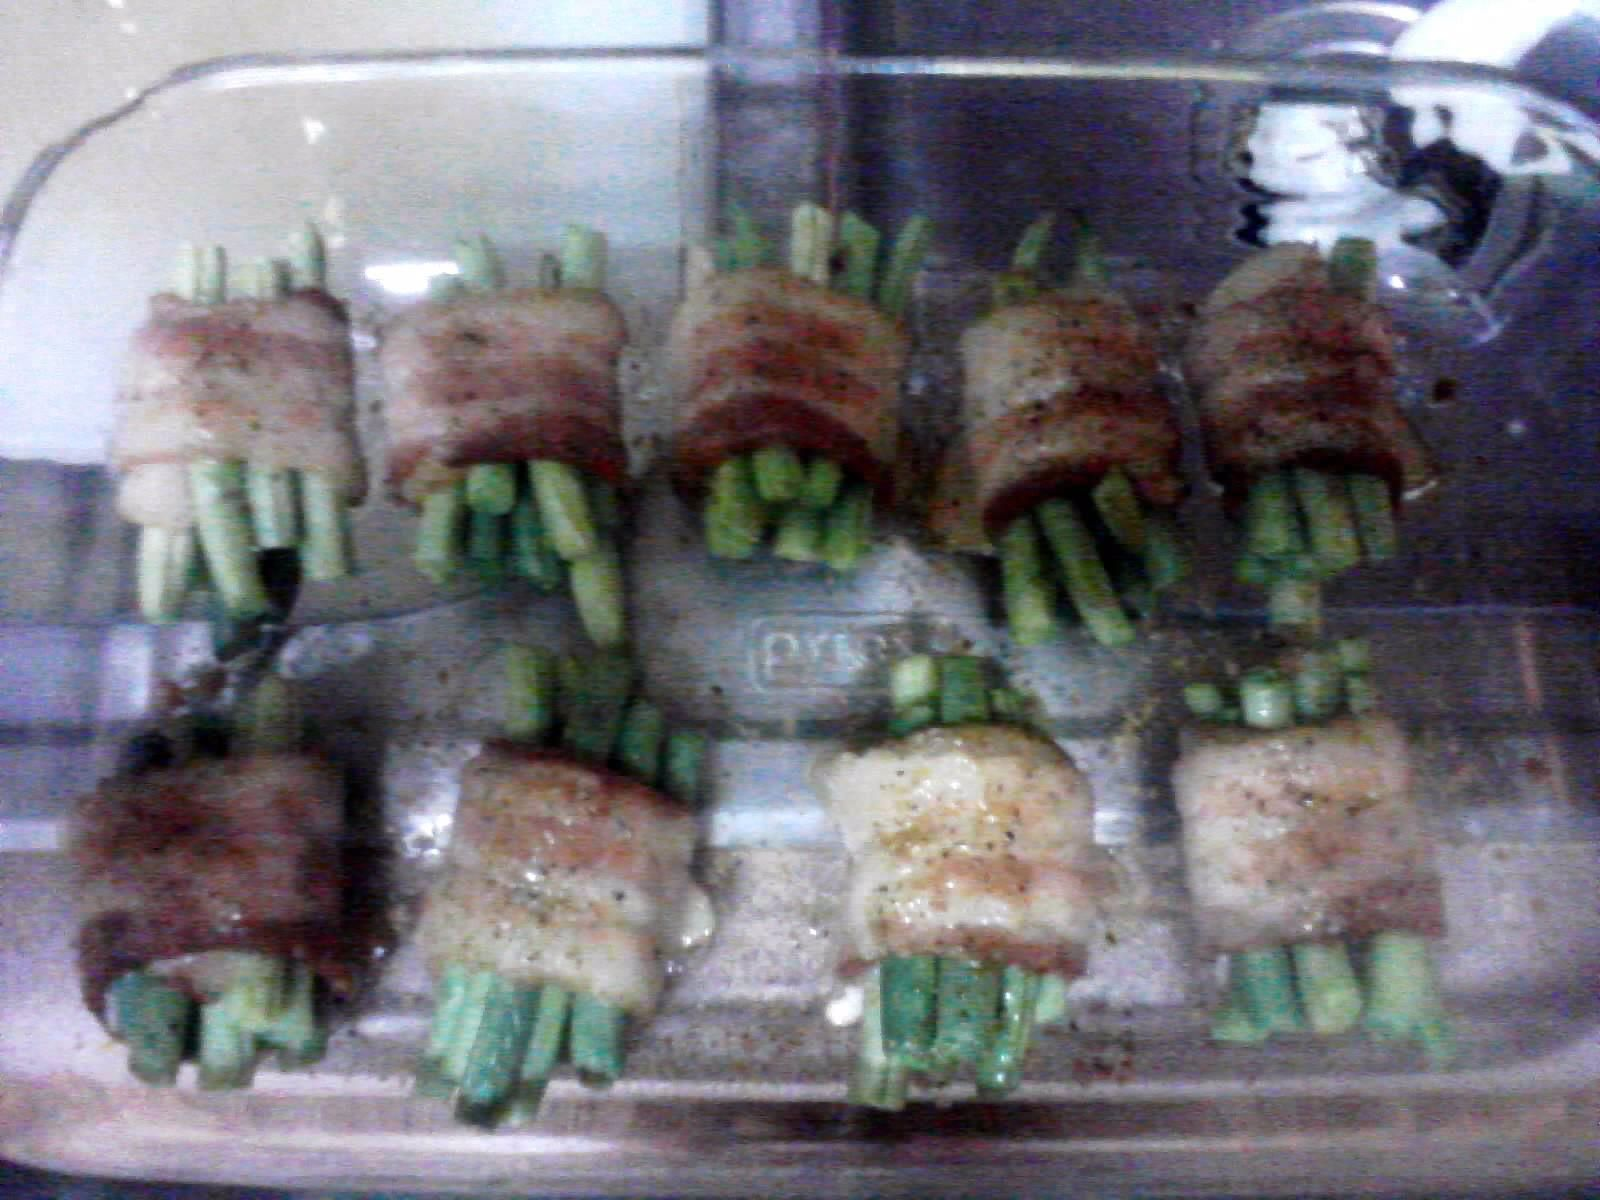 sinful green beans. cut green beans in half and cut bacon in half. wrap green beans with bacon and than sprinkle with brown suger and pepper. Bake at 400 for 20 mins.